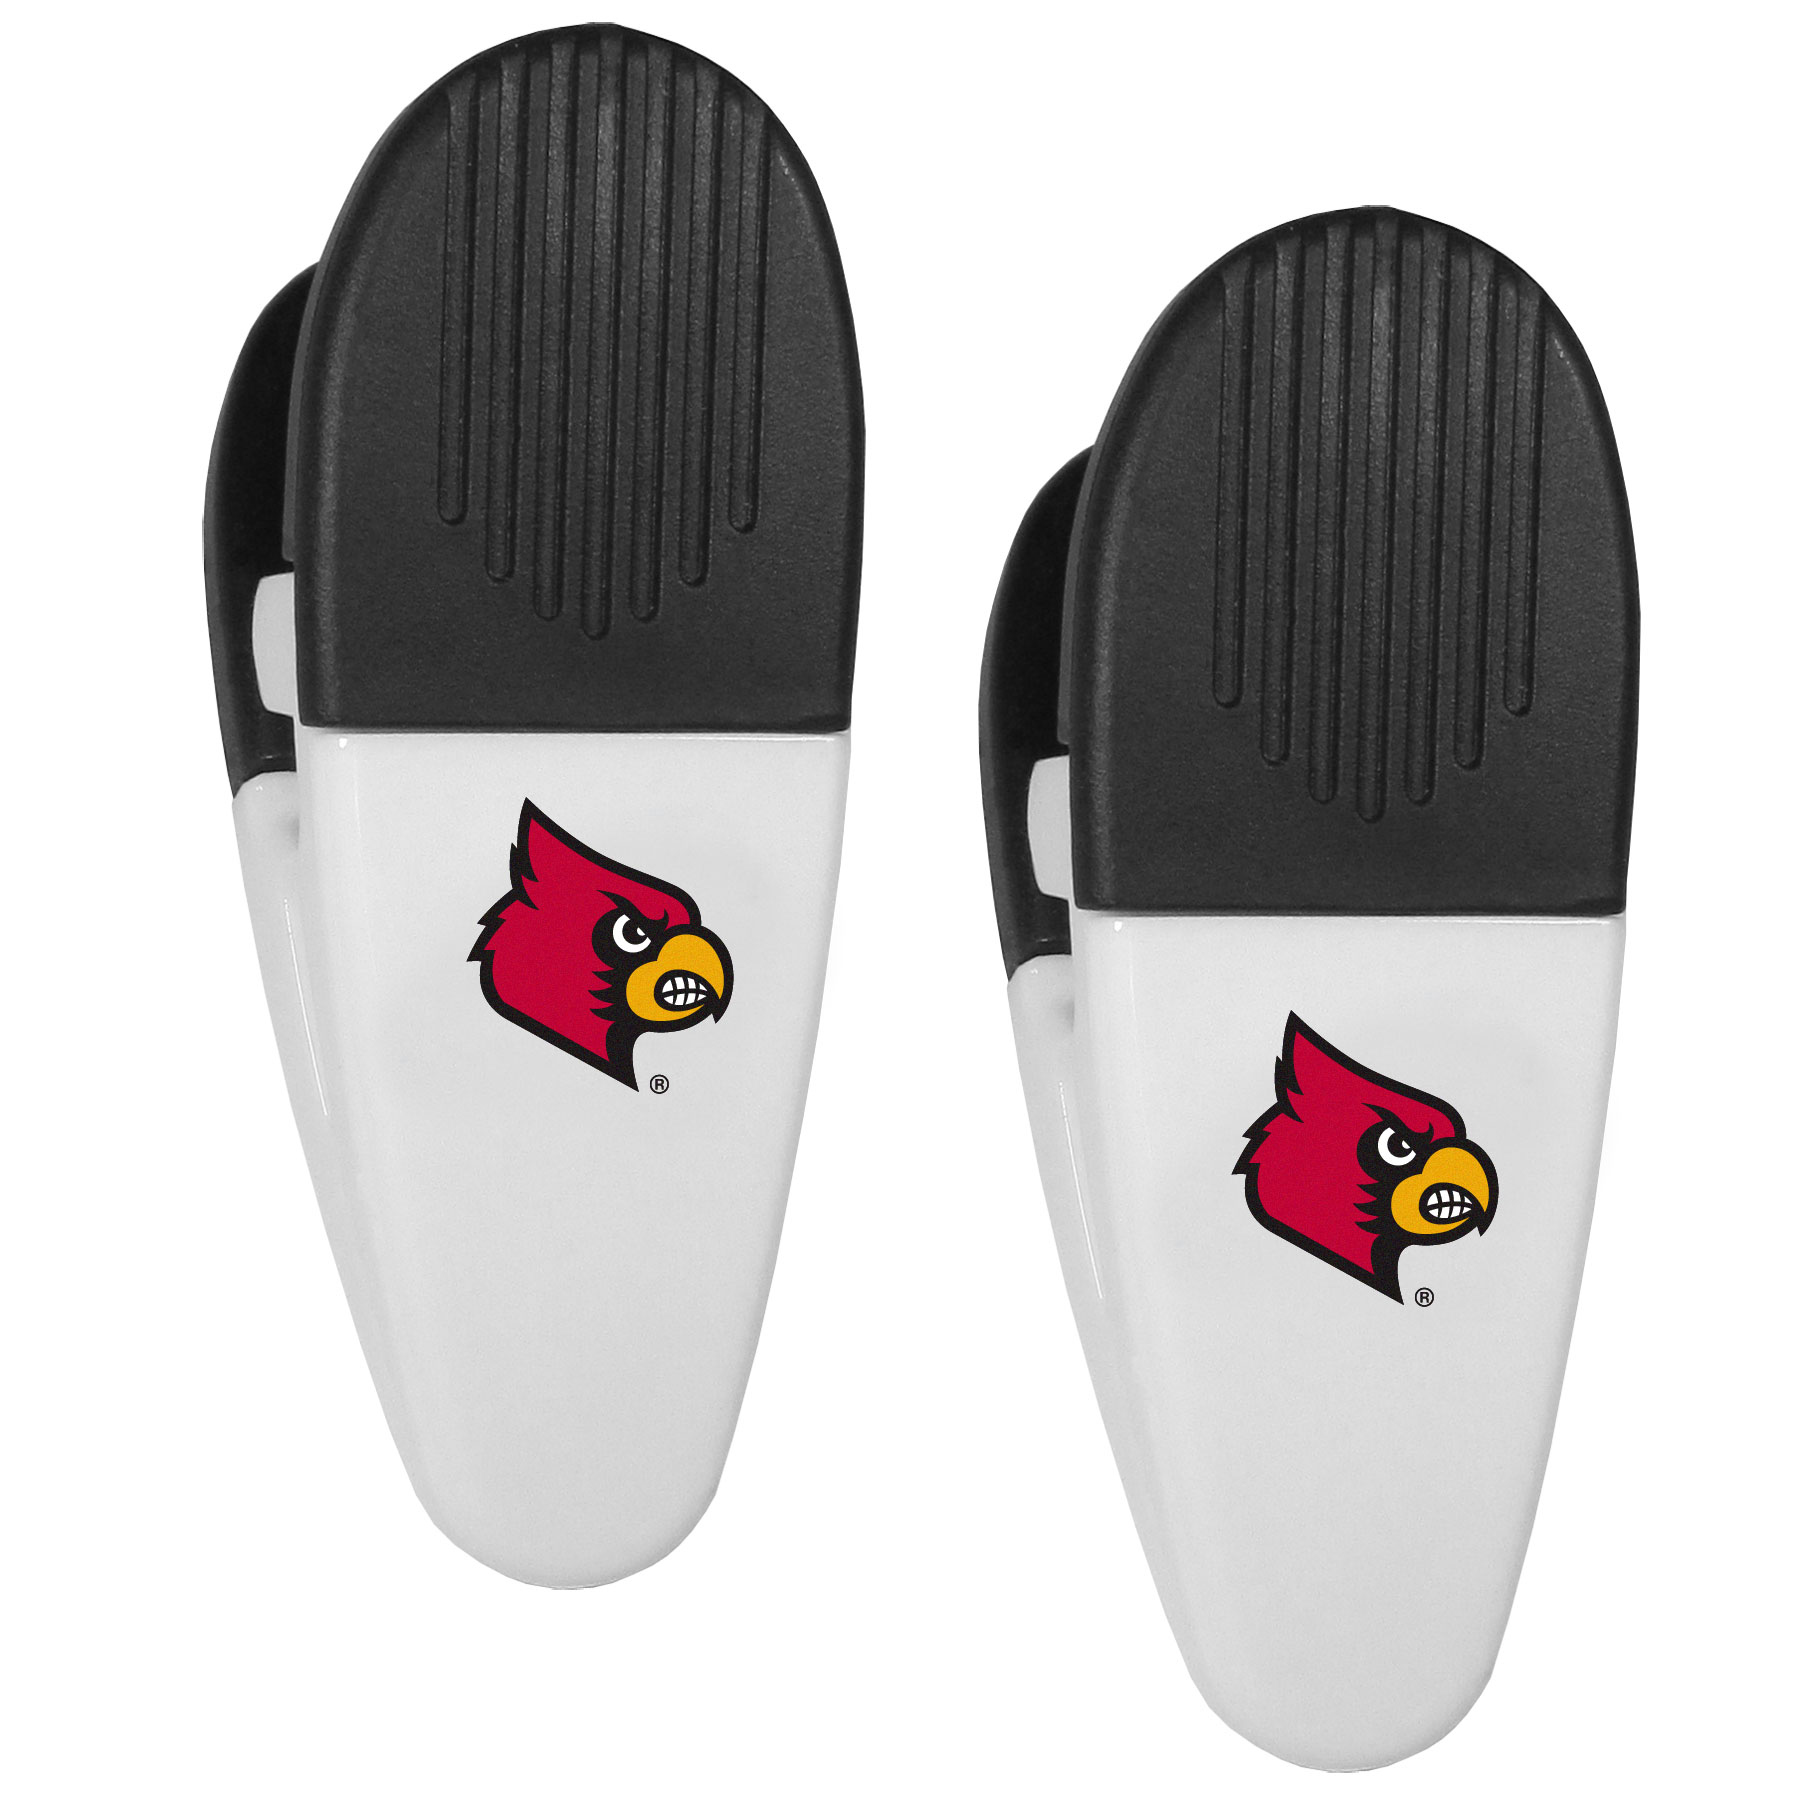 Louisville Cardinals Mini Chip Clip Magnets, 2 pk - Our Louisville Cardinals chip clip magnets feature a crisp team logo on the front of the clip. The clip is perfect for sealing chips for freshness and with the powerful magnet on the back it can be used to attach notes to the fridge or hanging your child's artwork. Set of 2 magnet clips, each clip is 3.5 inches tall and 1.25 inch wide.